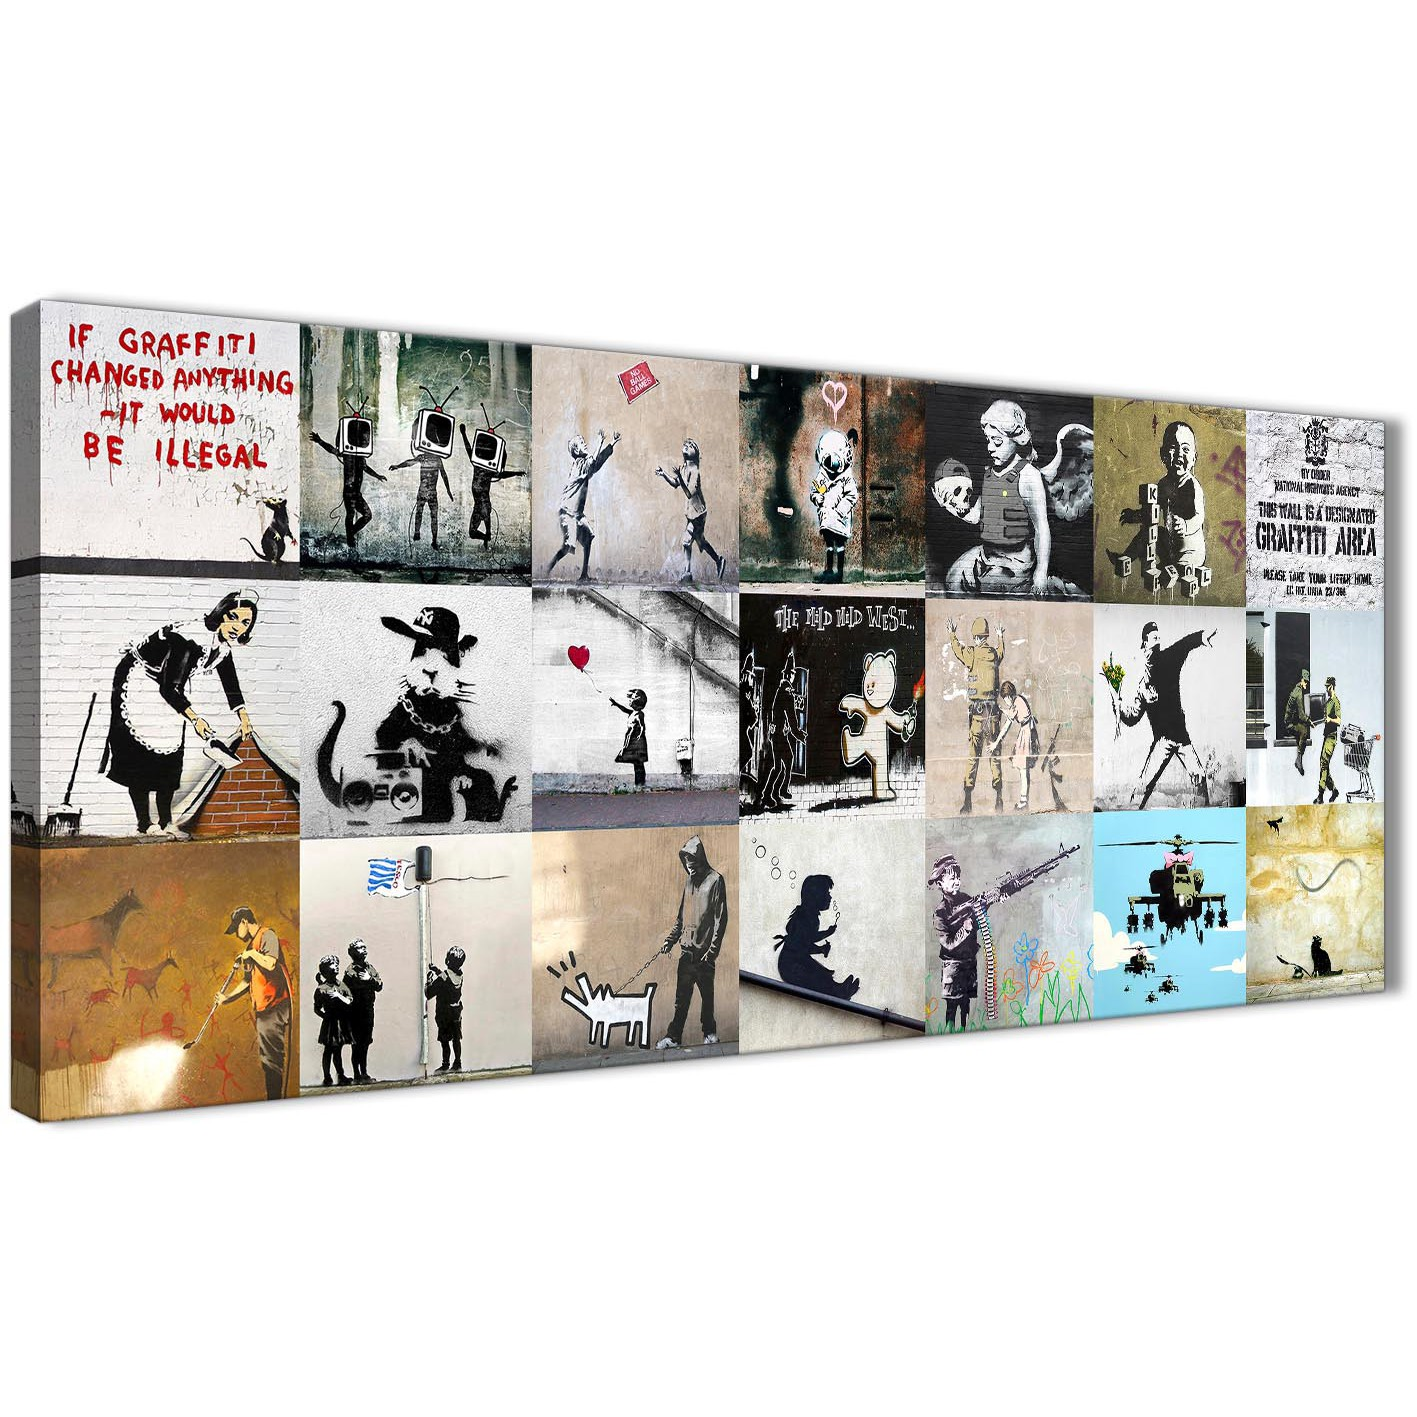 Oversized banksy graffiti collage canvas wall art modern 120cm wide 1356 for your boys bedroom display gallery item 1